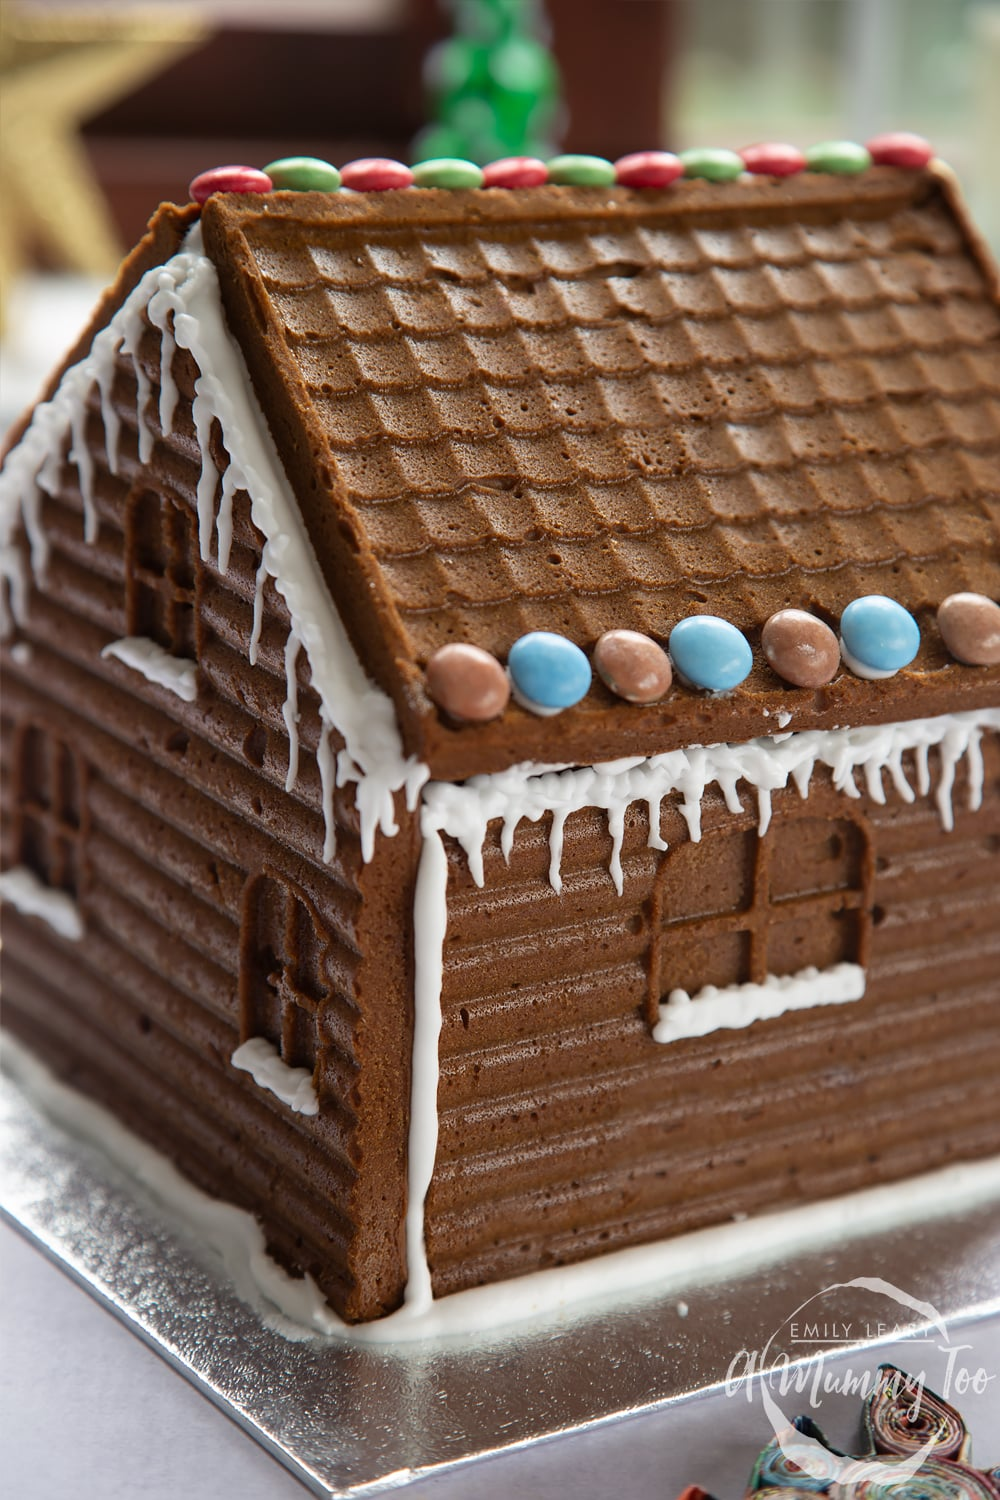 A gingerbread house stands on a silver board. The sills of the windows have been piped with royal icing to resemble snow, while icing icicles hang from the roof, which is also decorated with chocolate beans.